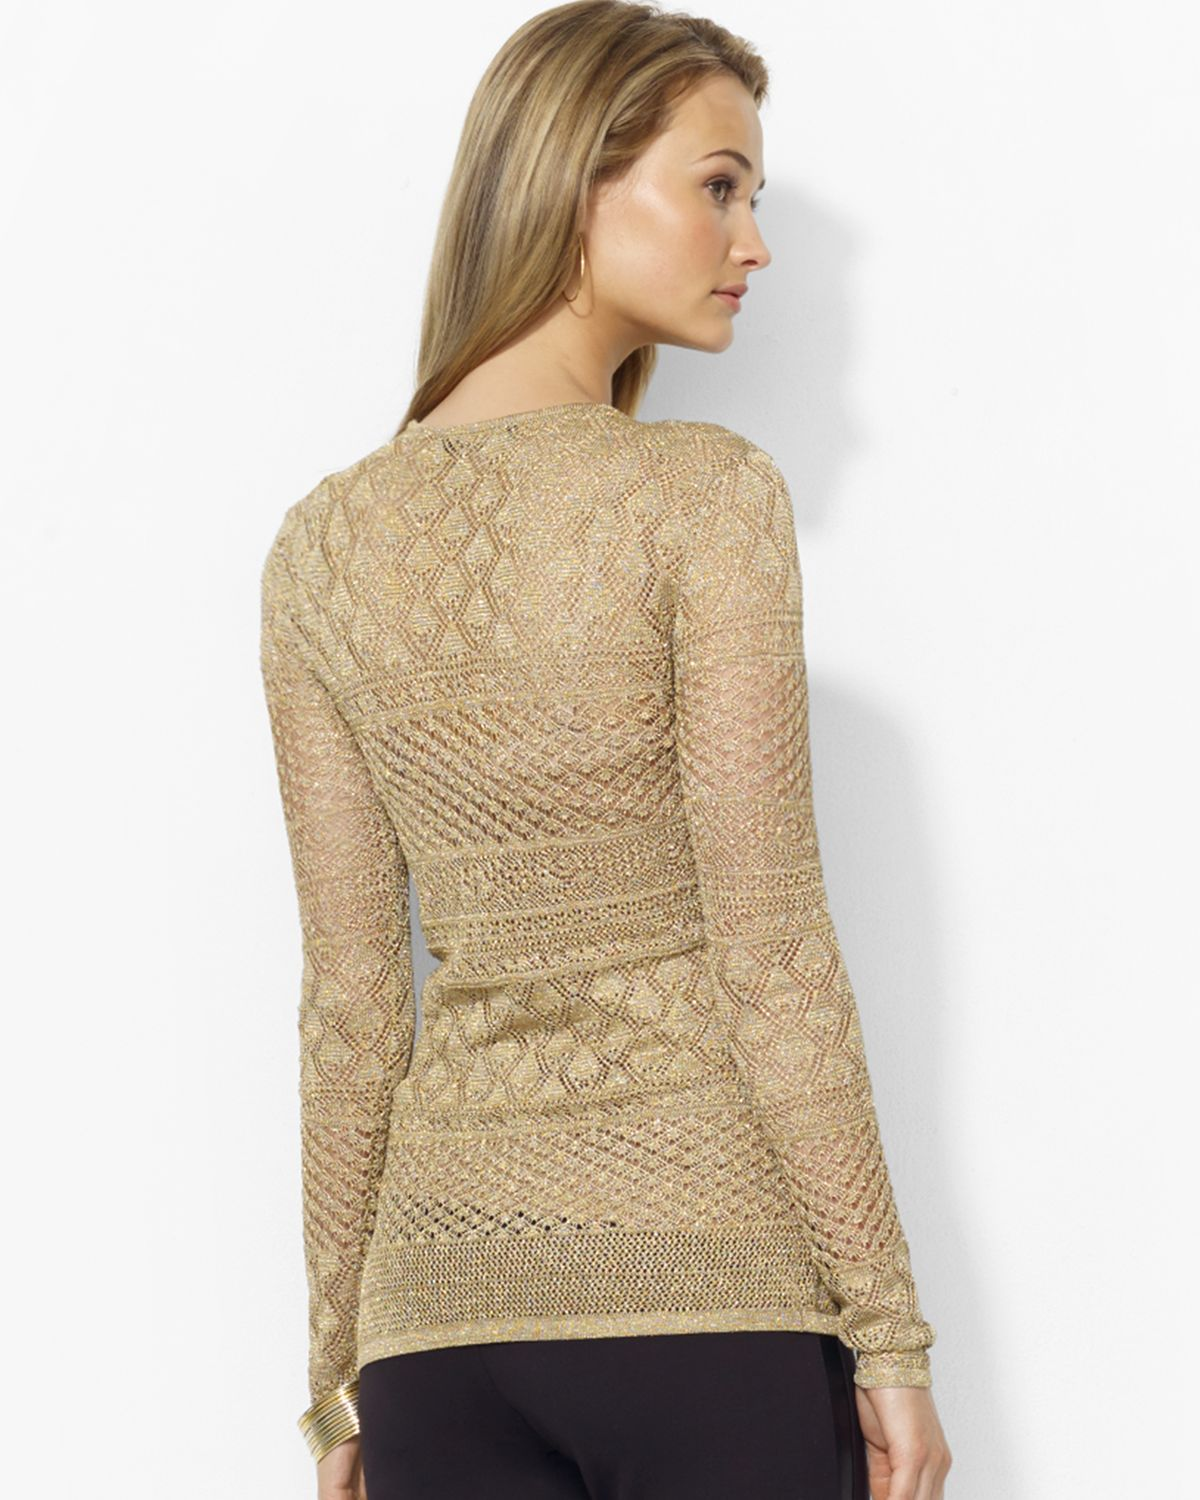 Ralph lauren Metallic Pointelle Knit Sweater in Natural | Lyst